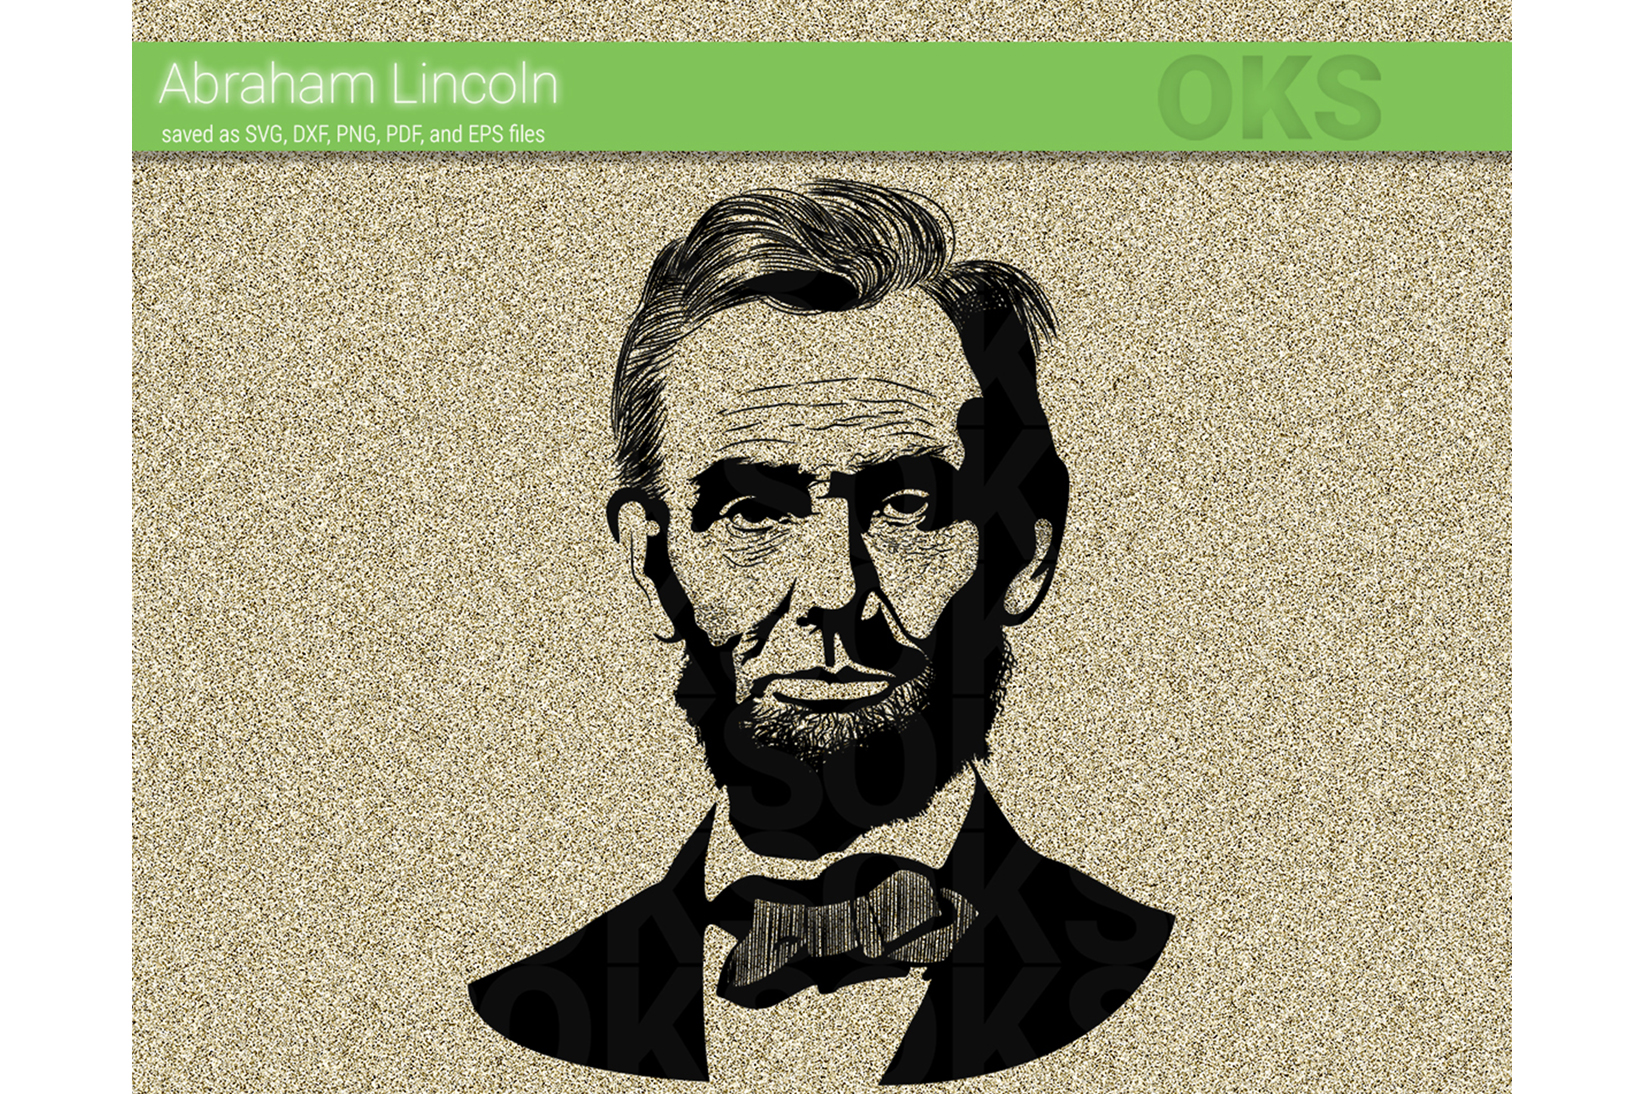 Download Free Abraham Lincoln Svg Vector Graphic By Crafteroks Creative Fabrica for Cricut Explore, Silhouette and other cutting machines.